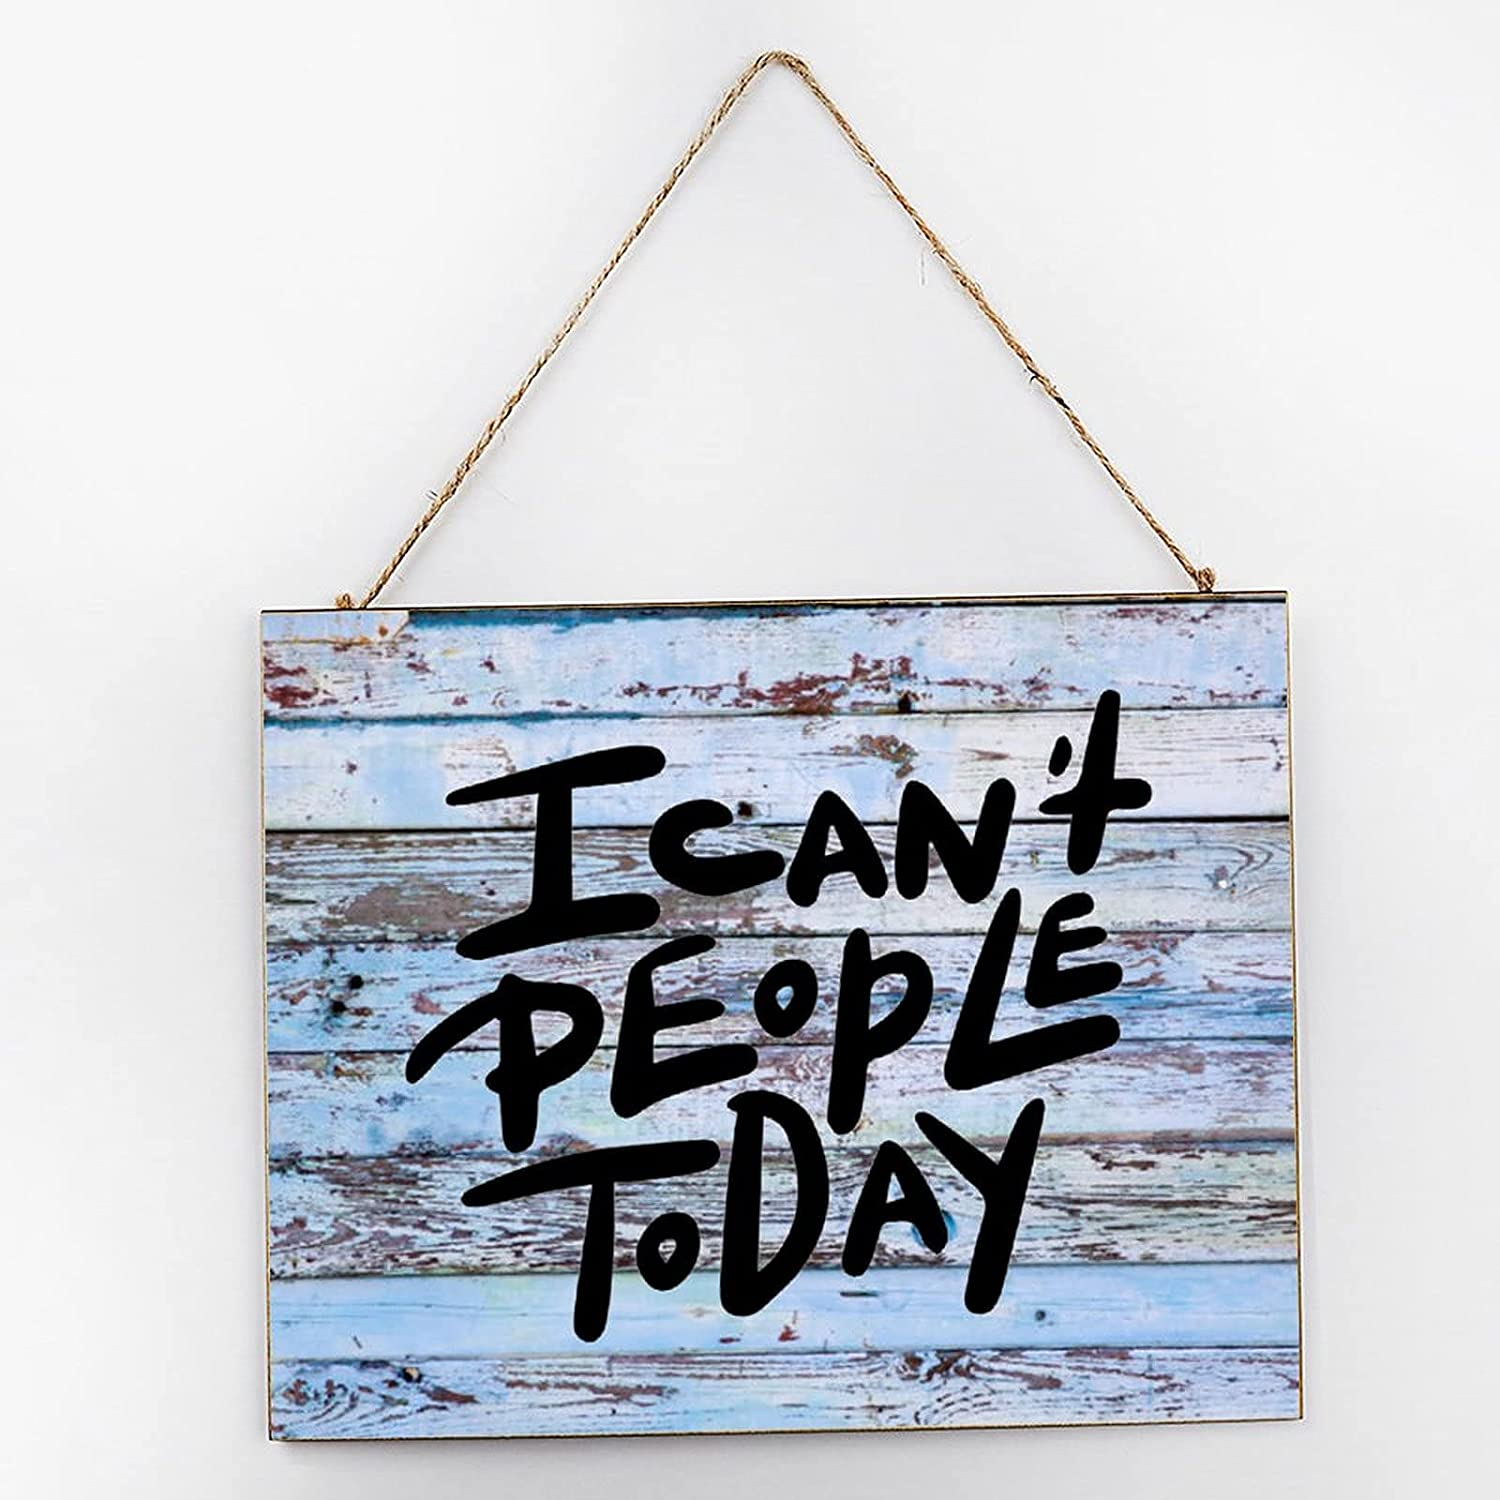 by Unbranded 12x10 Wooden Sign,I Today Nursery Large Max 78% OFF special price Can't R People